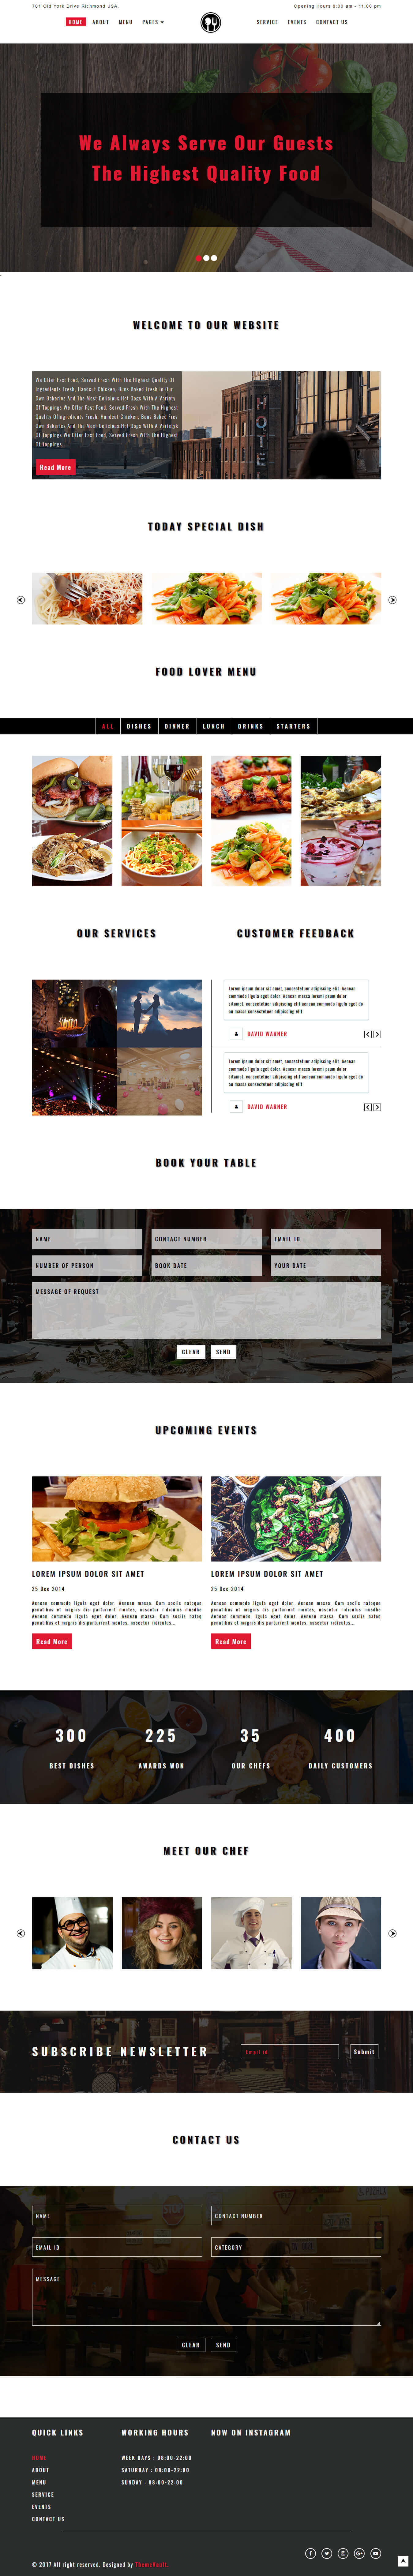 Foodeque – Free Responsive HTML5 Restaurant Website Templates